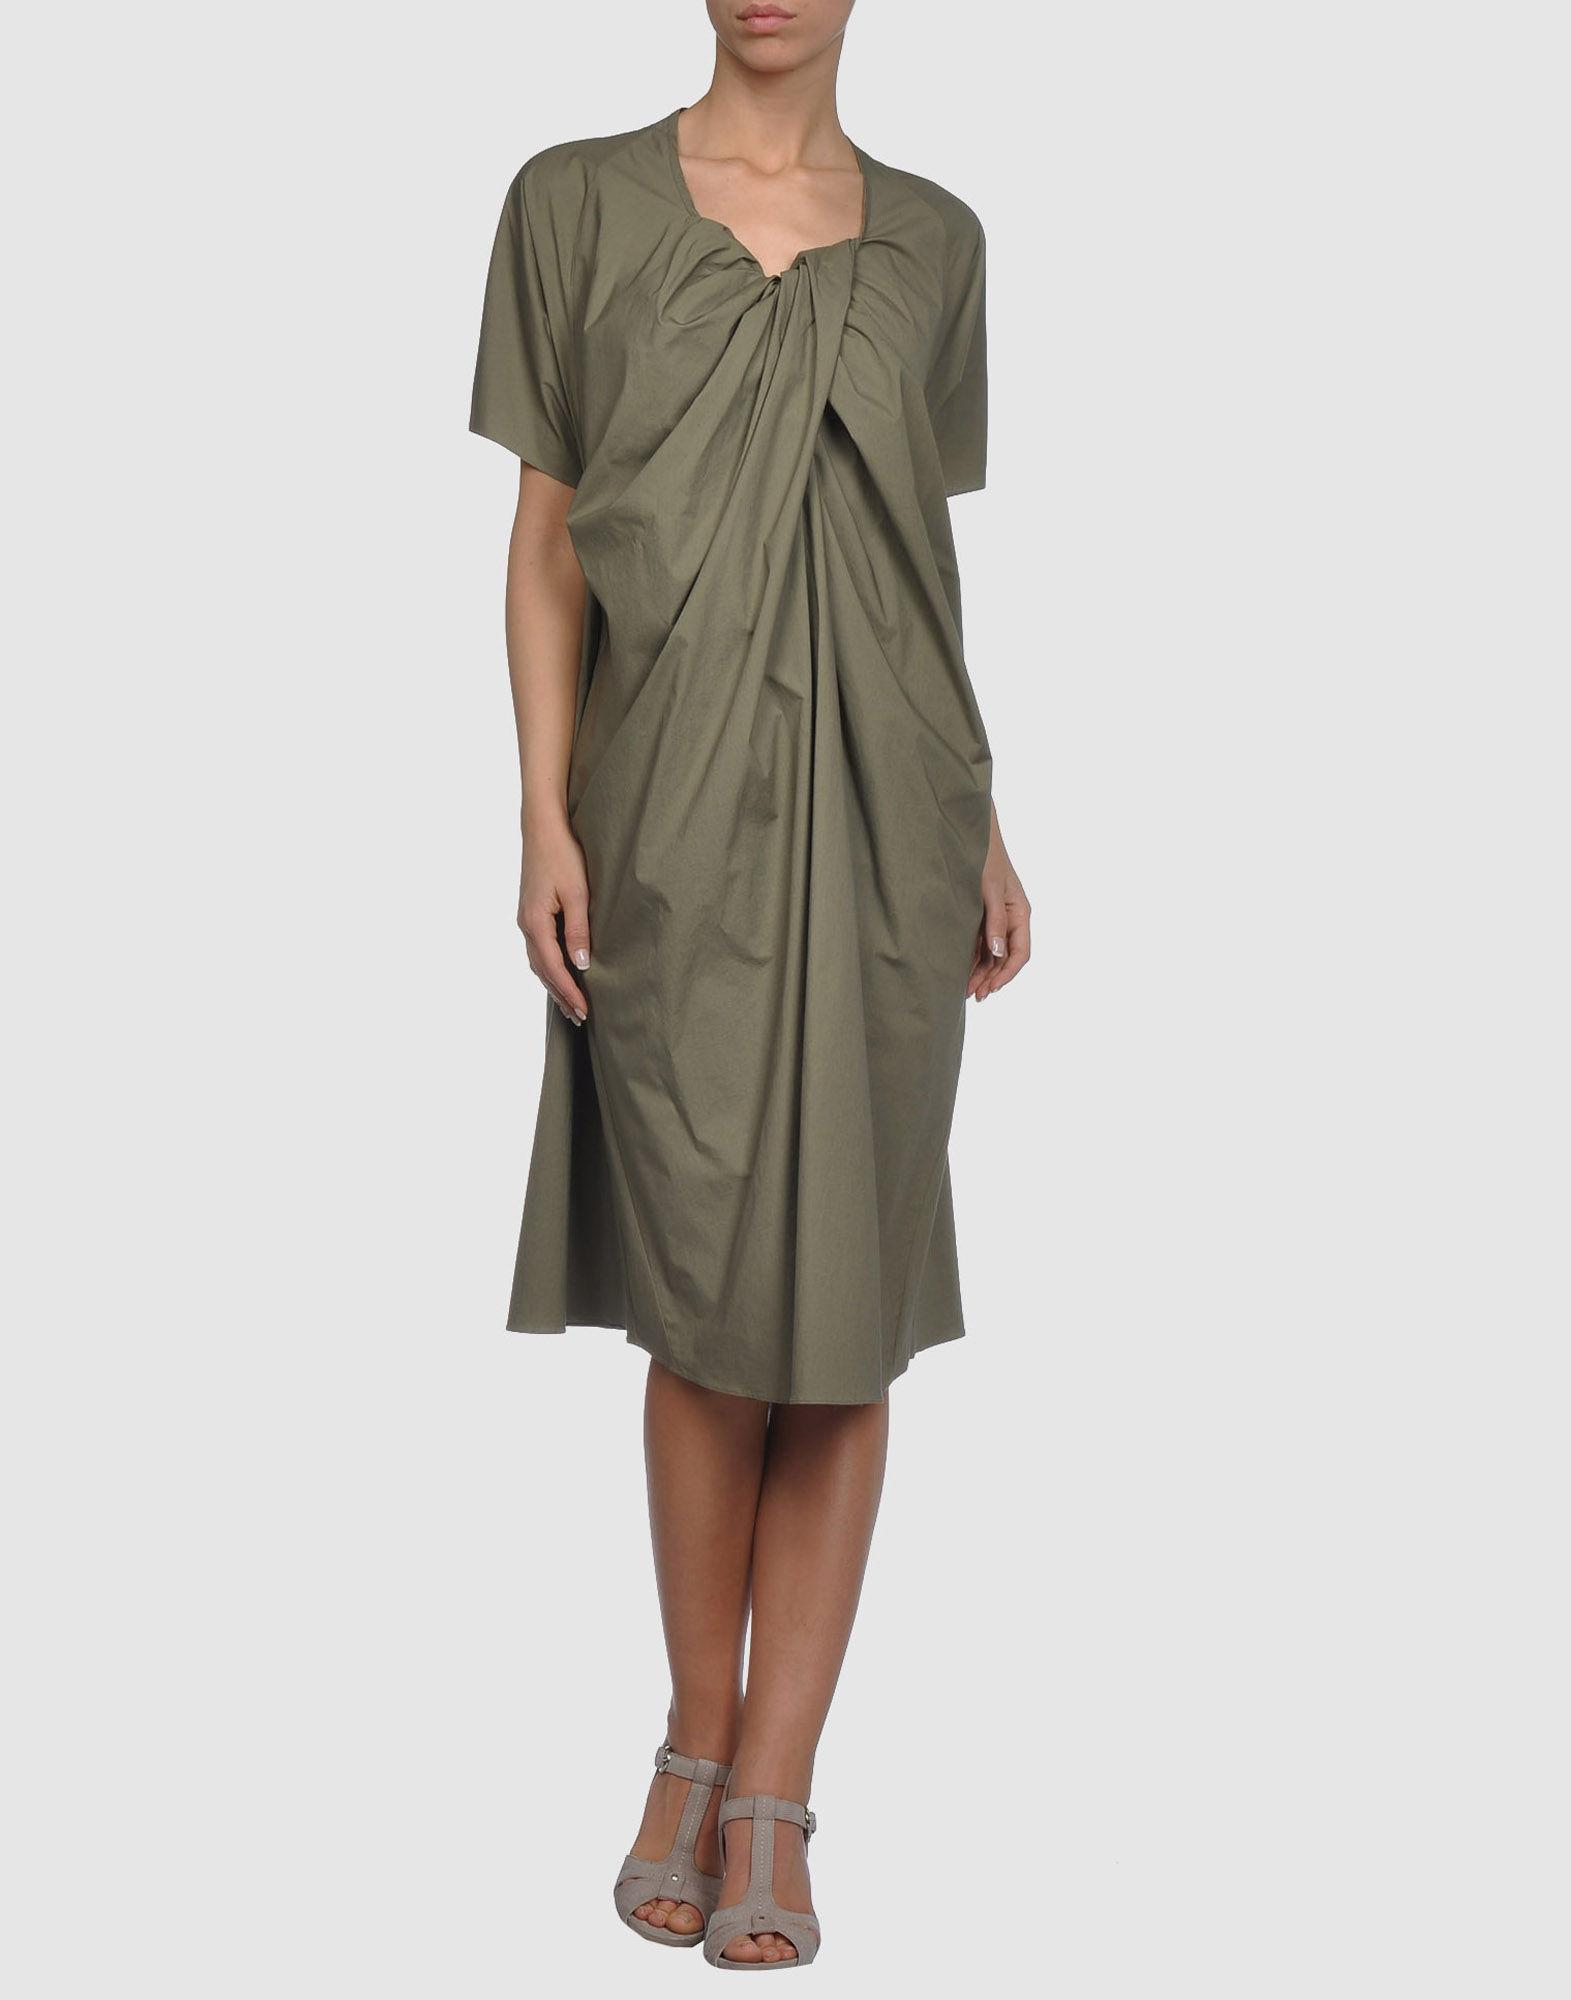 Hache 3/4 Length Dresses In Military Green